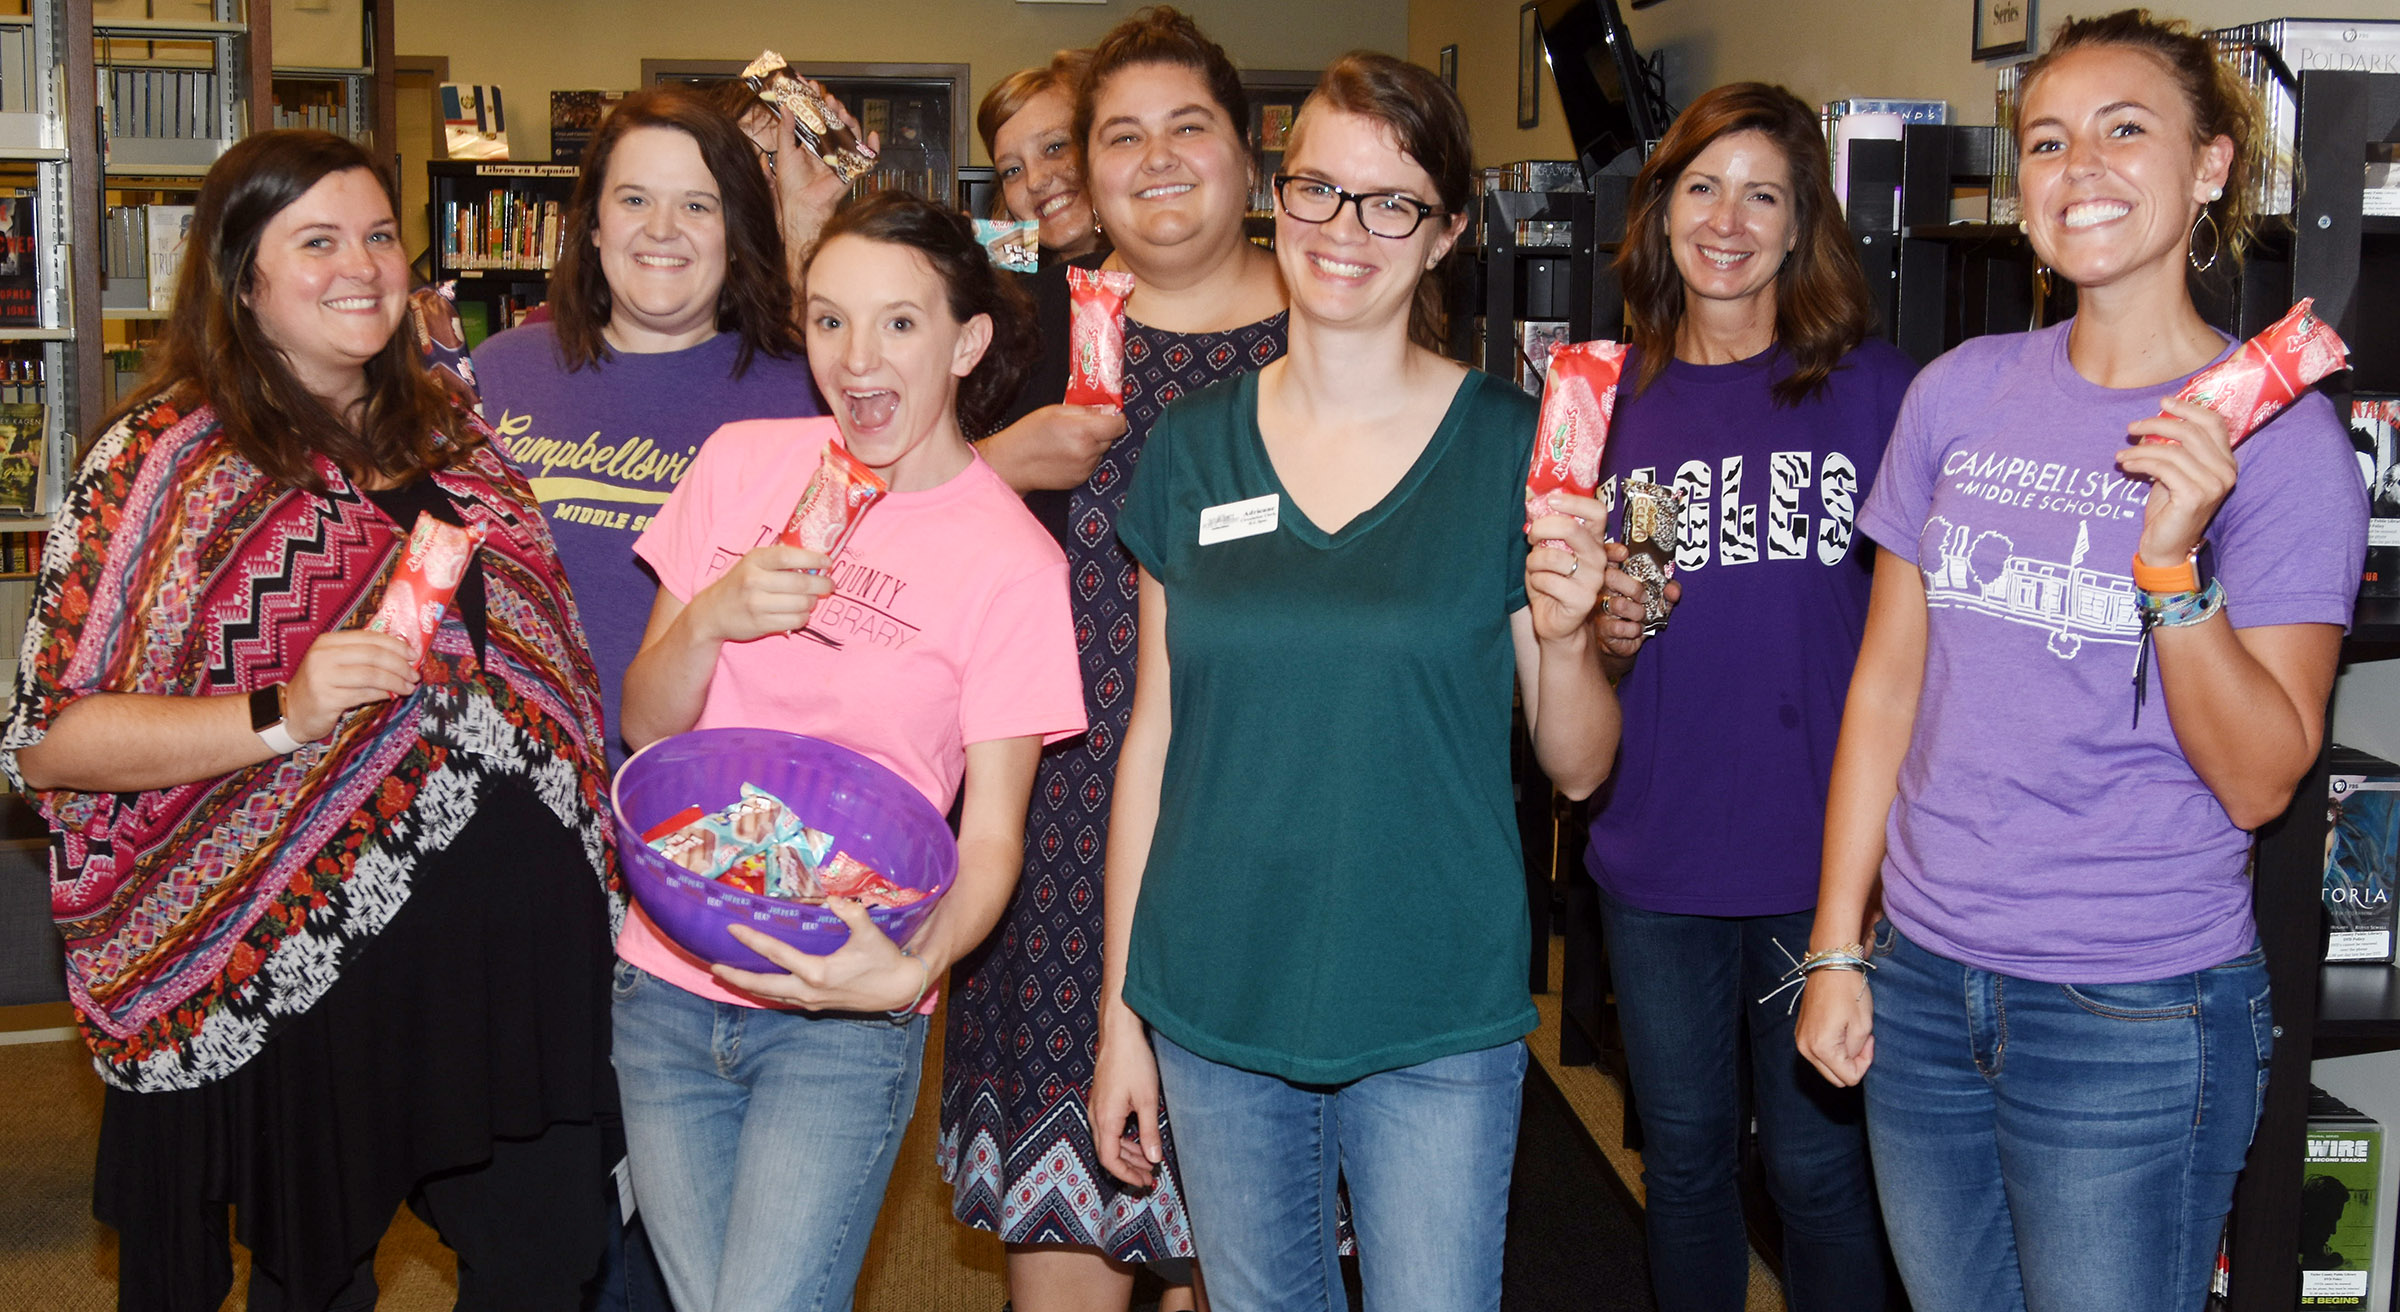 CMS teachers Paige Cook, Christi Kidwell and LeeAnn Grider deliver ice cream treats at Taylor County Public Library.